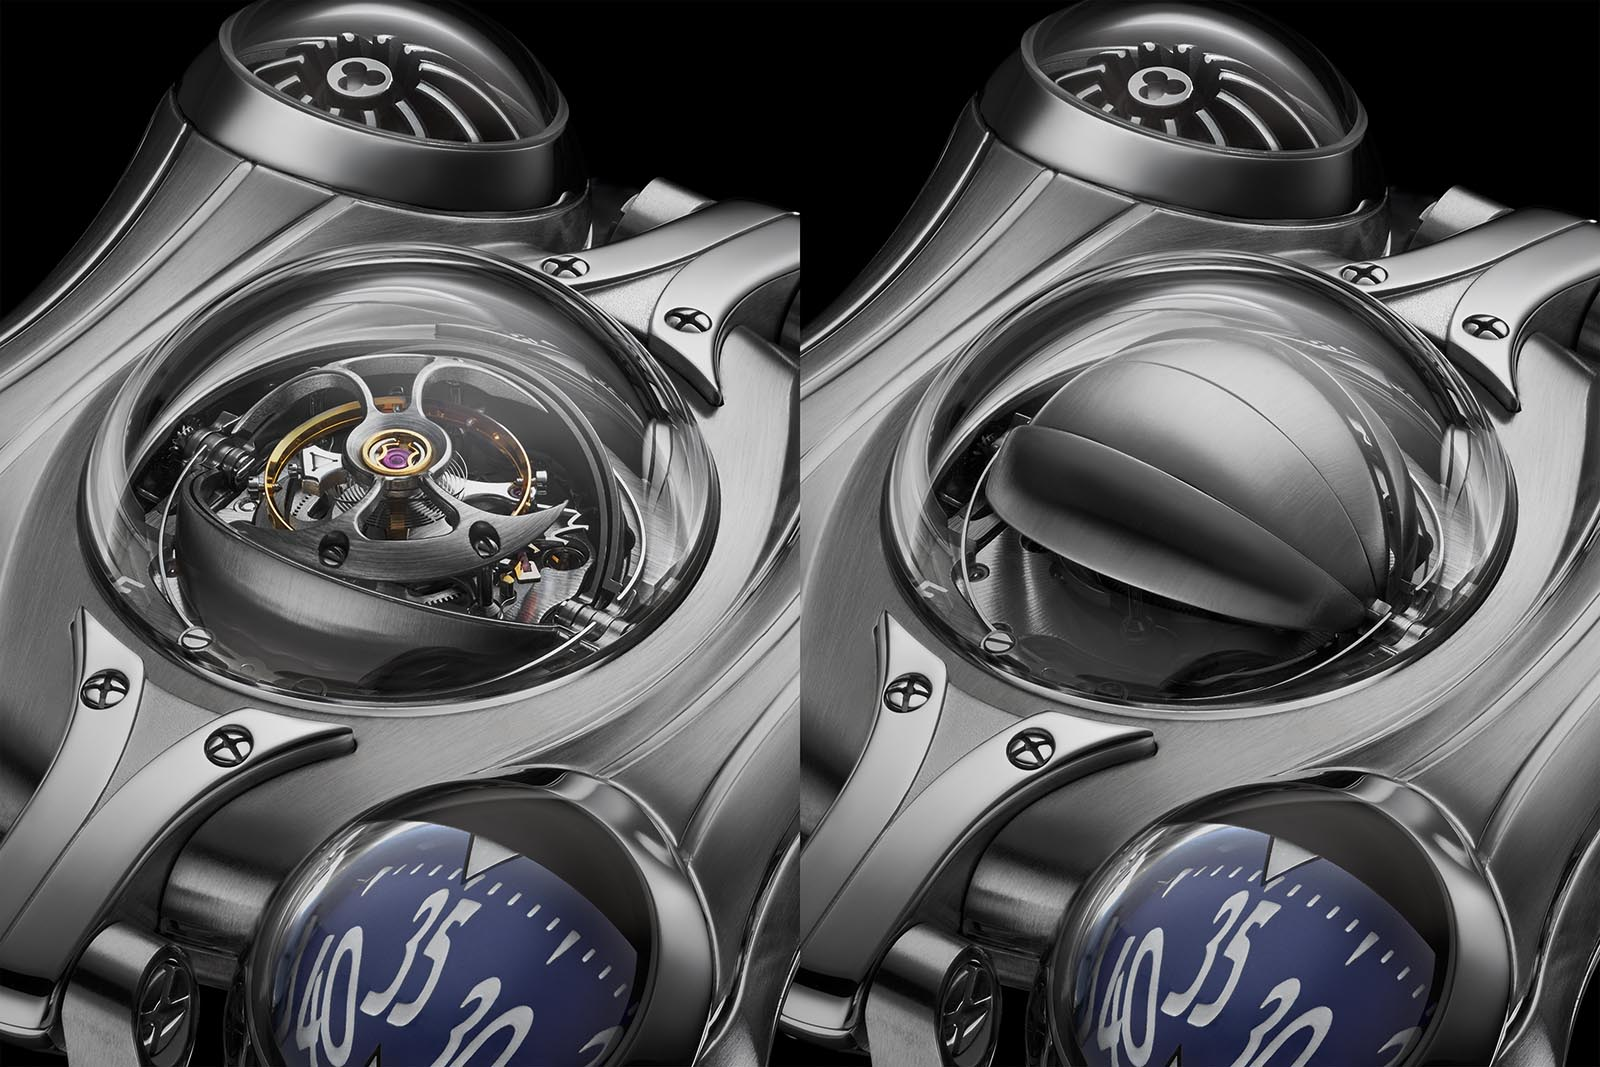 MB&F HM6 Final Edition Steel 3